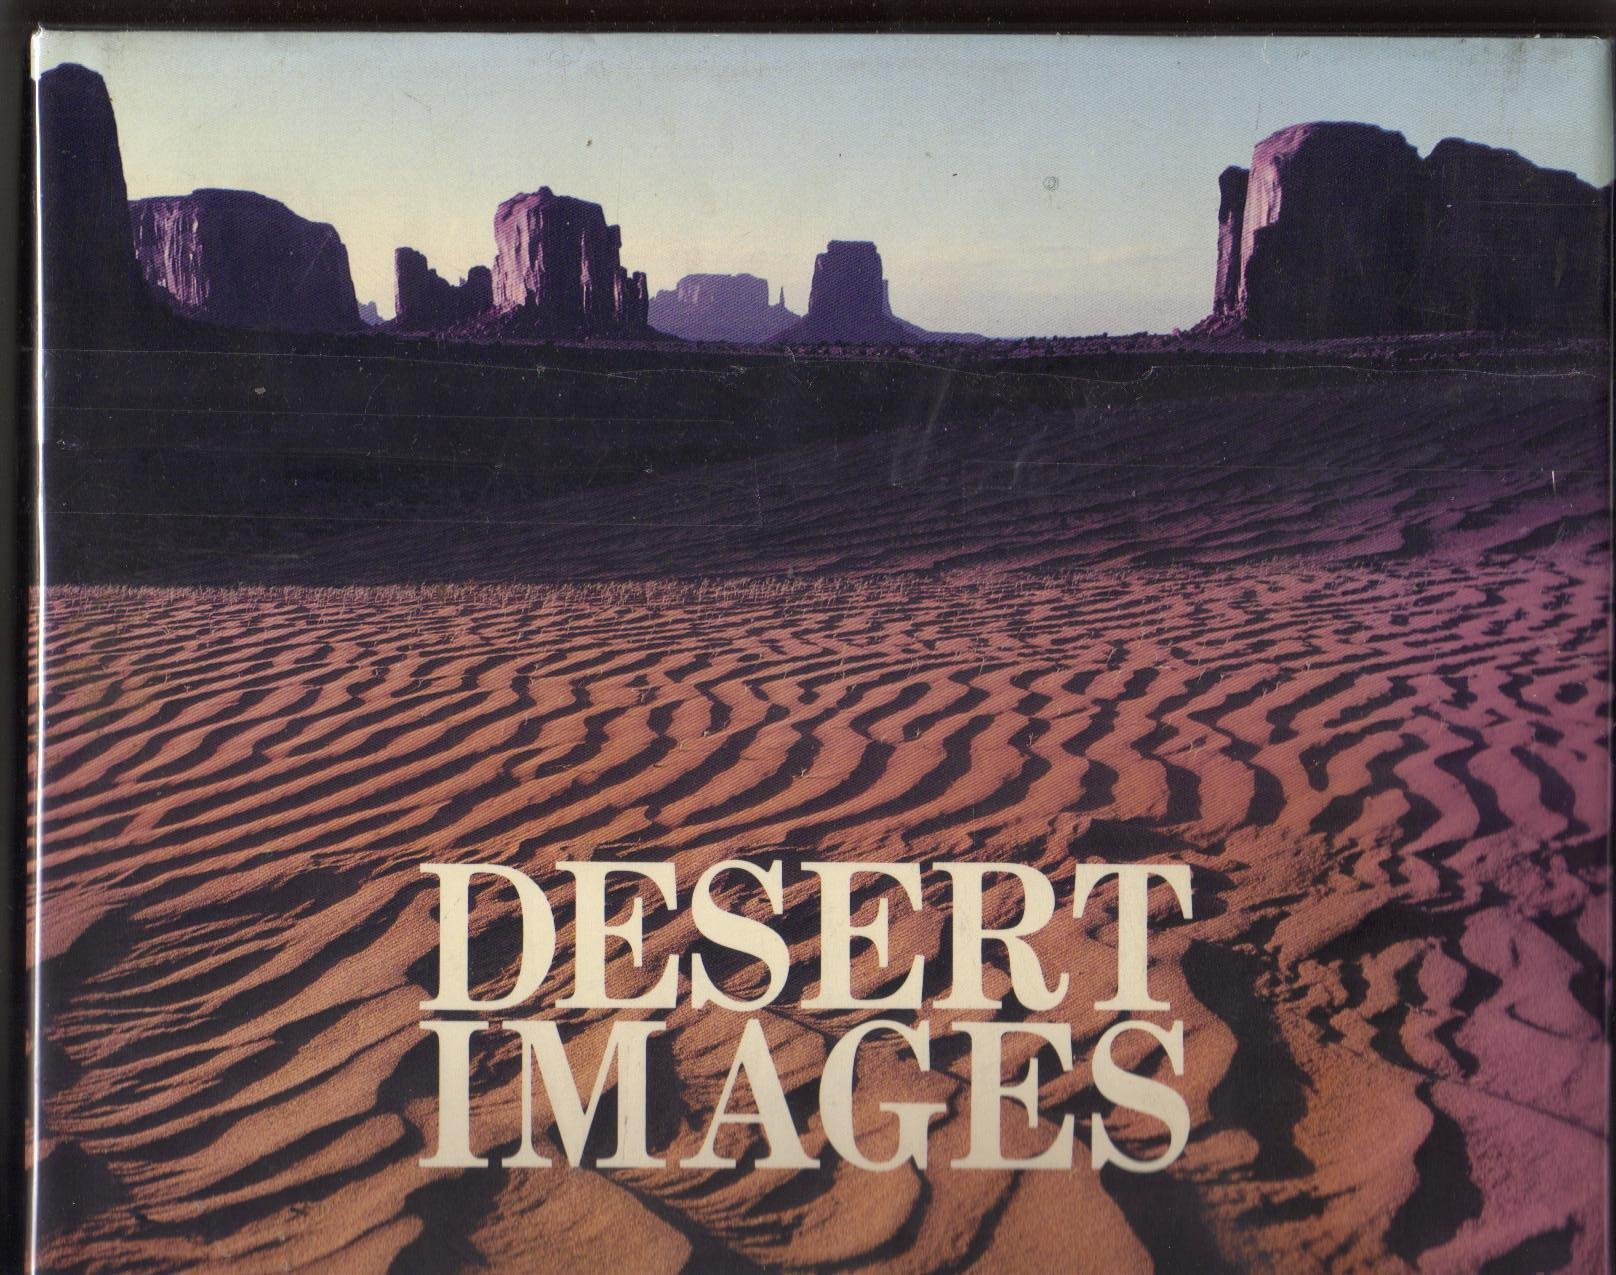 desert images edward abbey david muench amazon desert images edward abbey david muench 9780831721893 com books